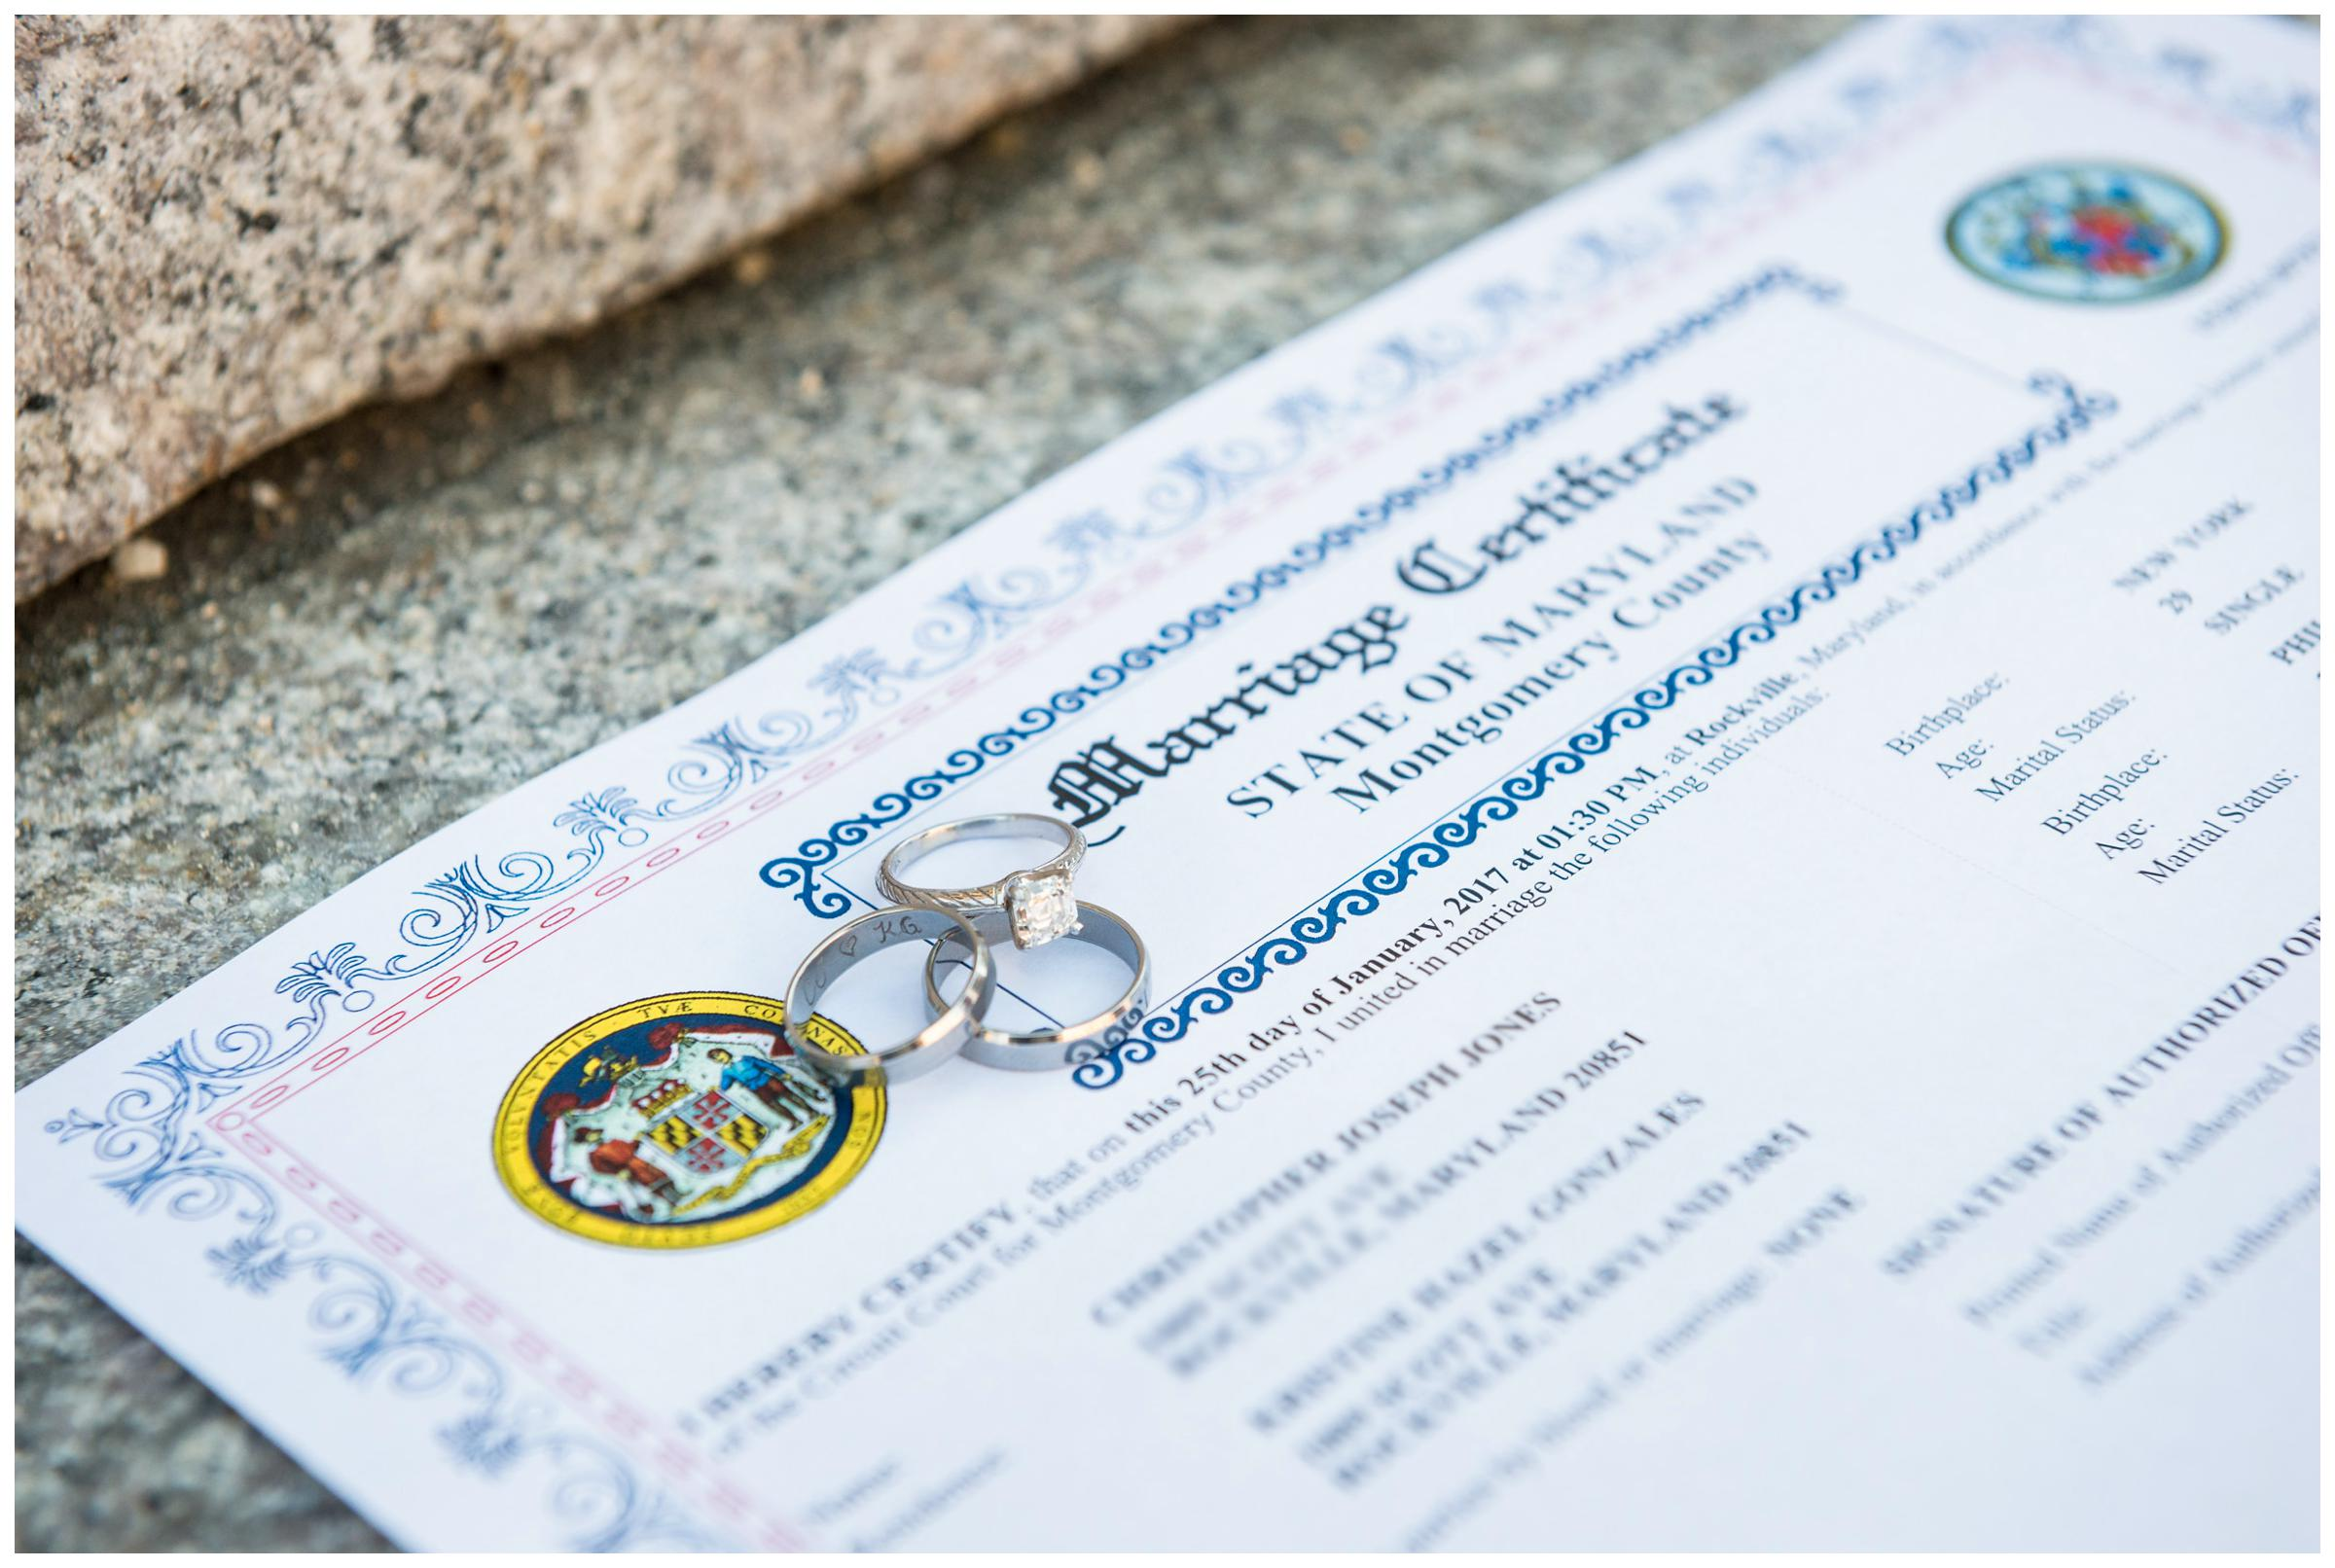 wedding rings on marriage certificate after courthouse wedding in Rockville, Maryland.